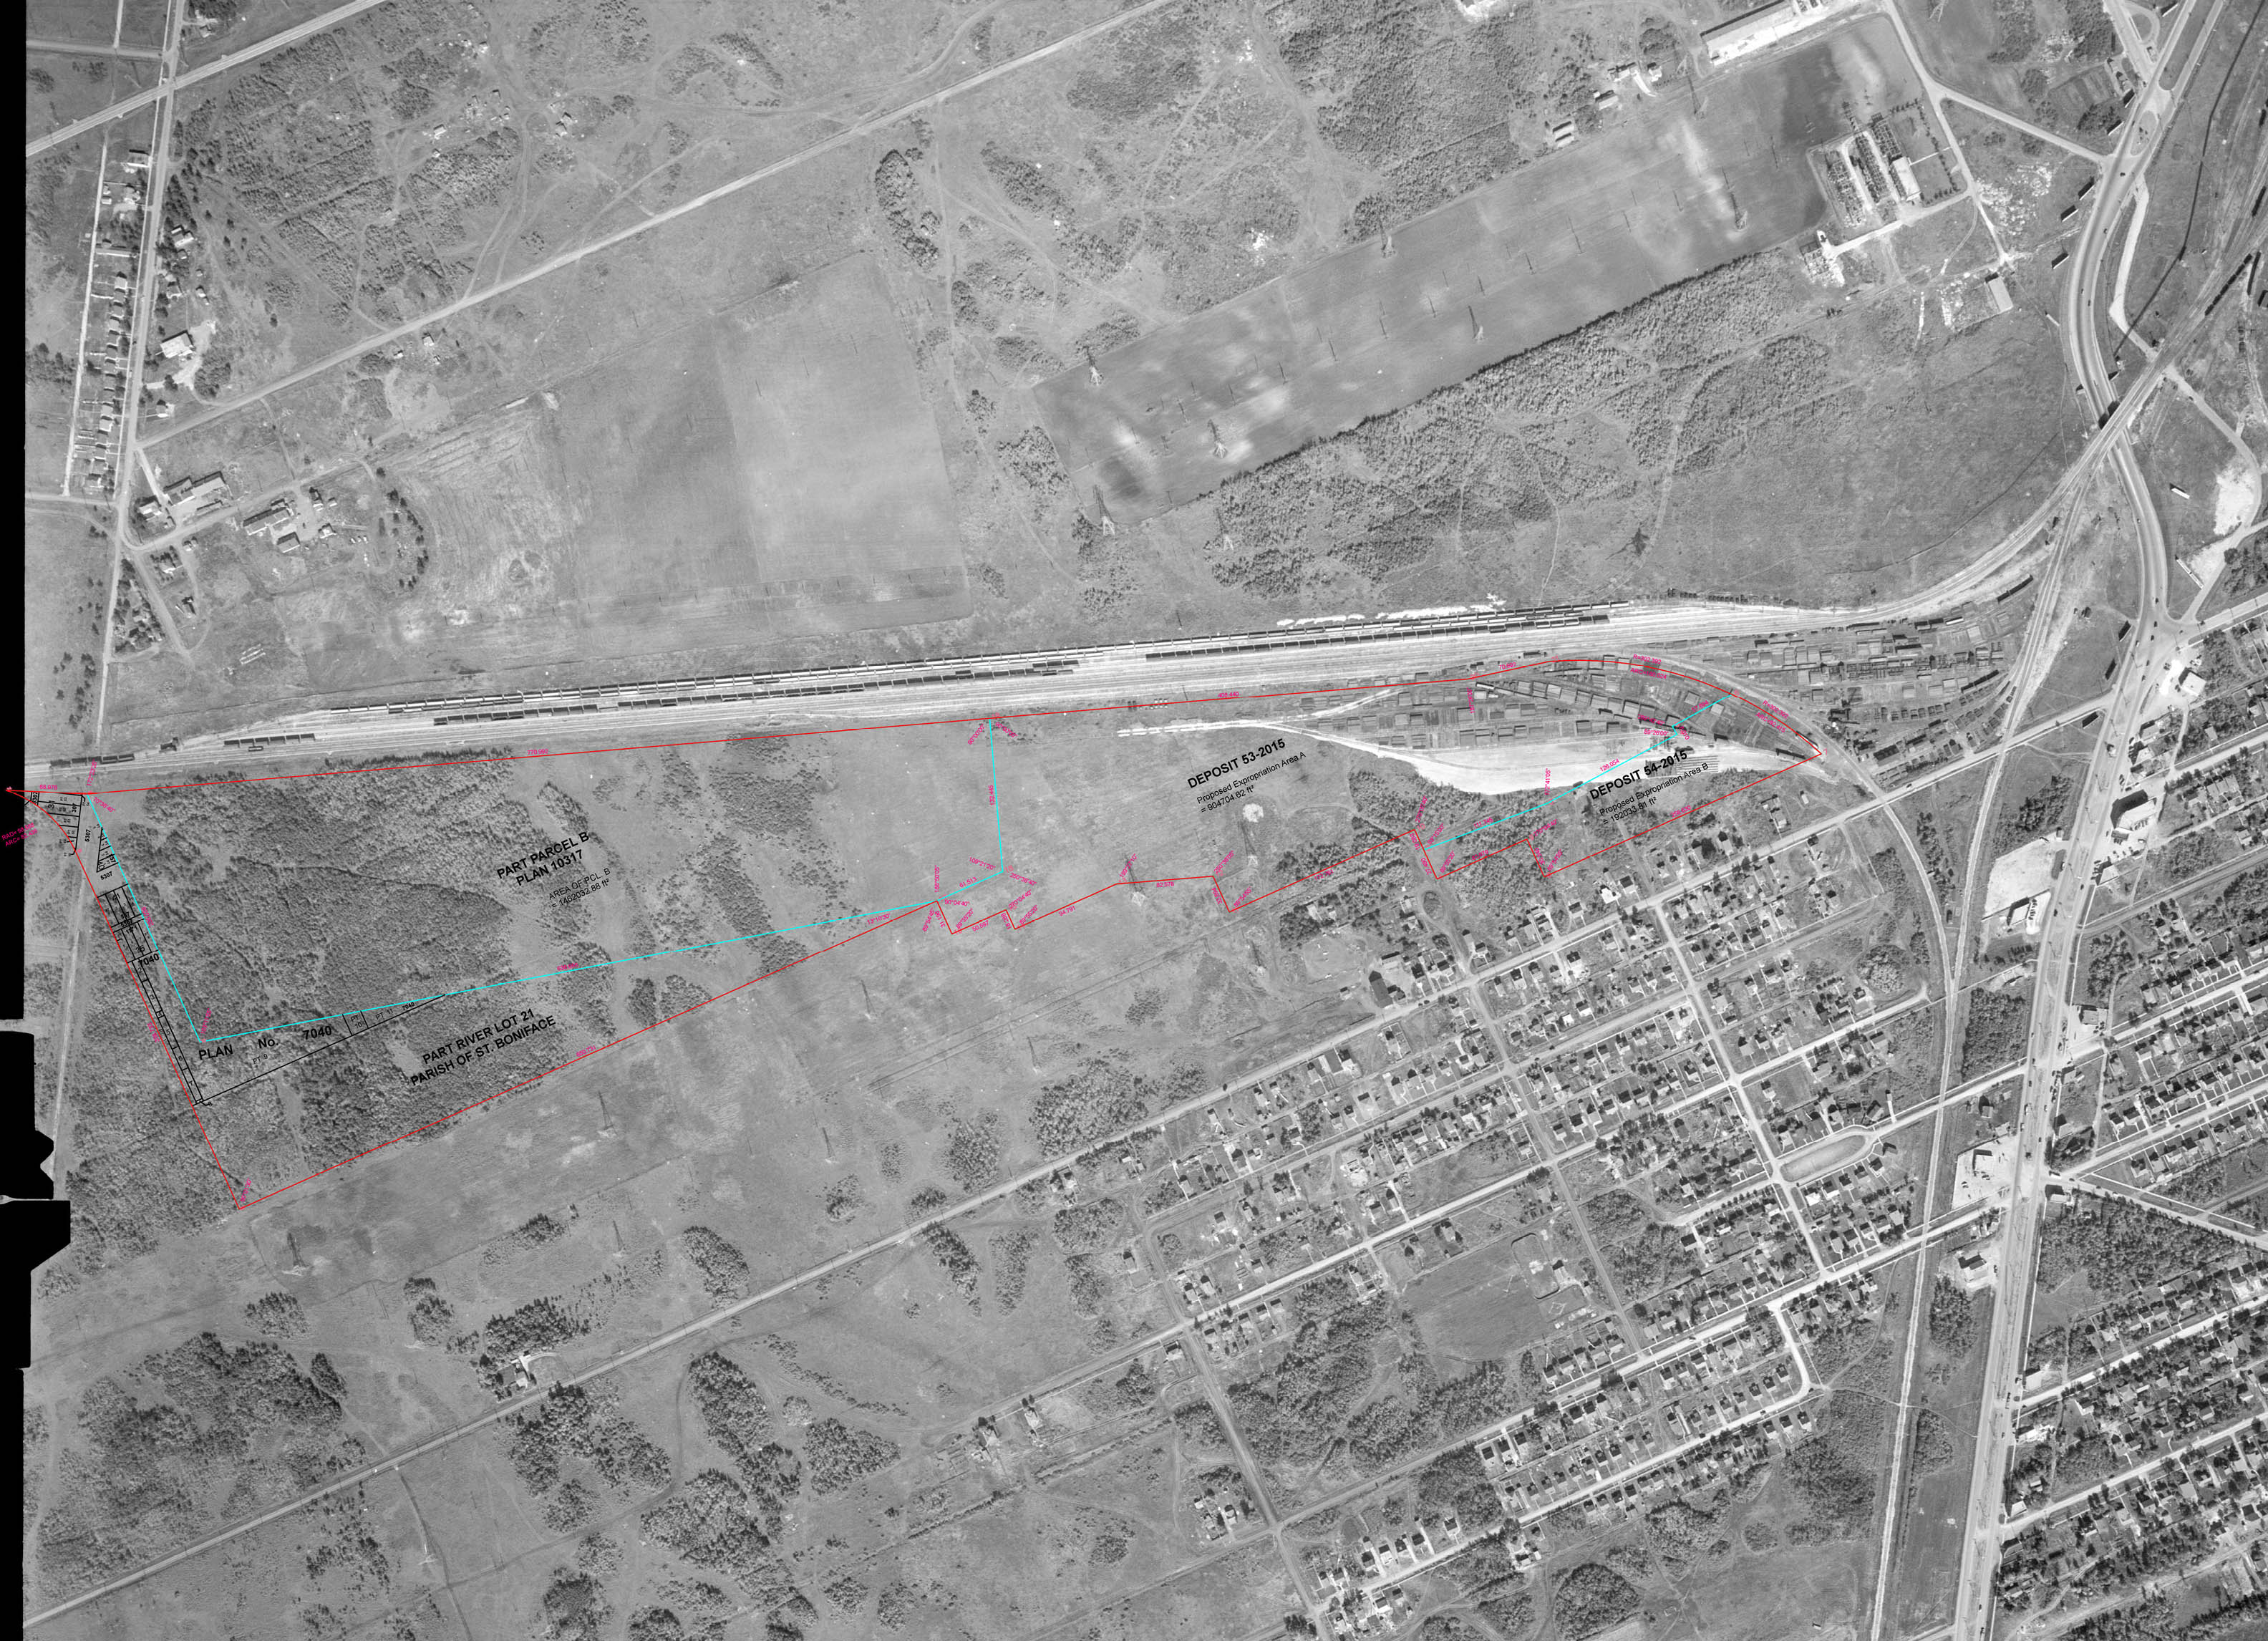 1950 Aerial Photo from National Earth Observation Data Framework, Govt. of Canada